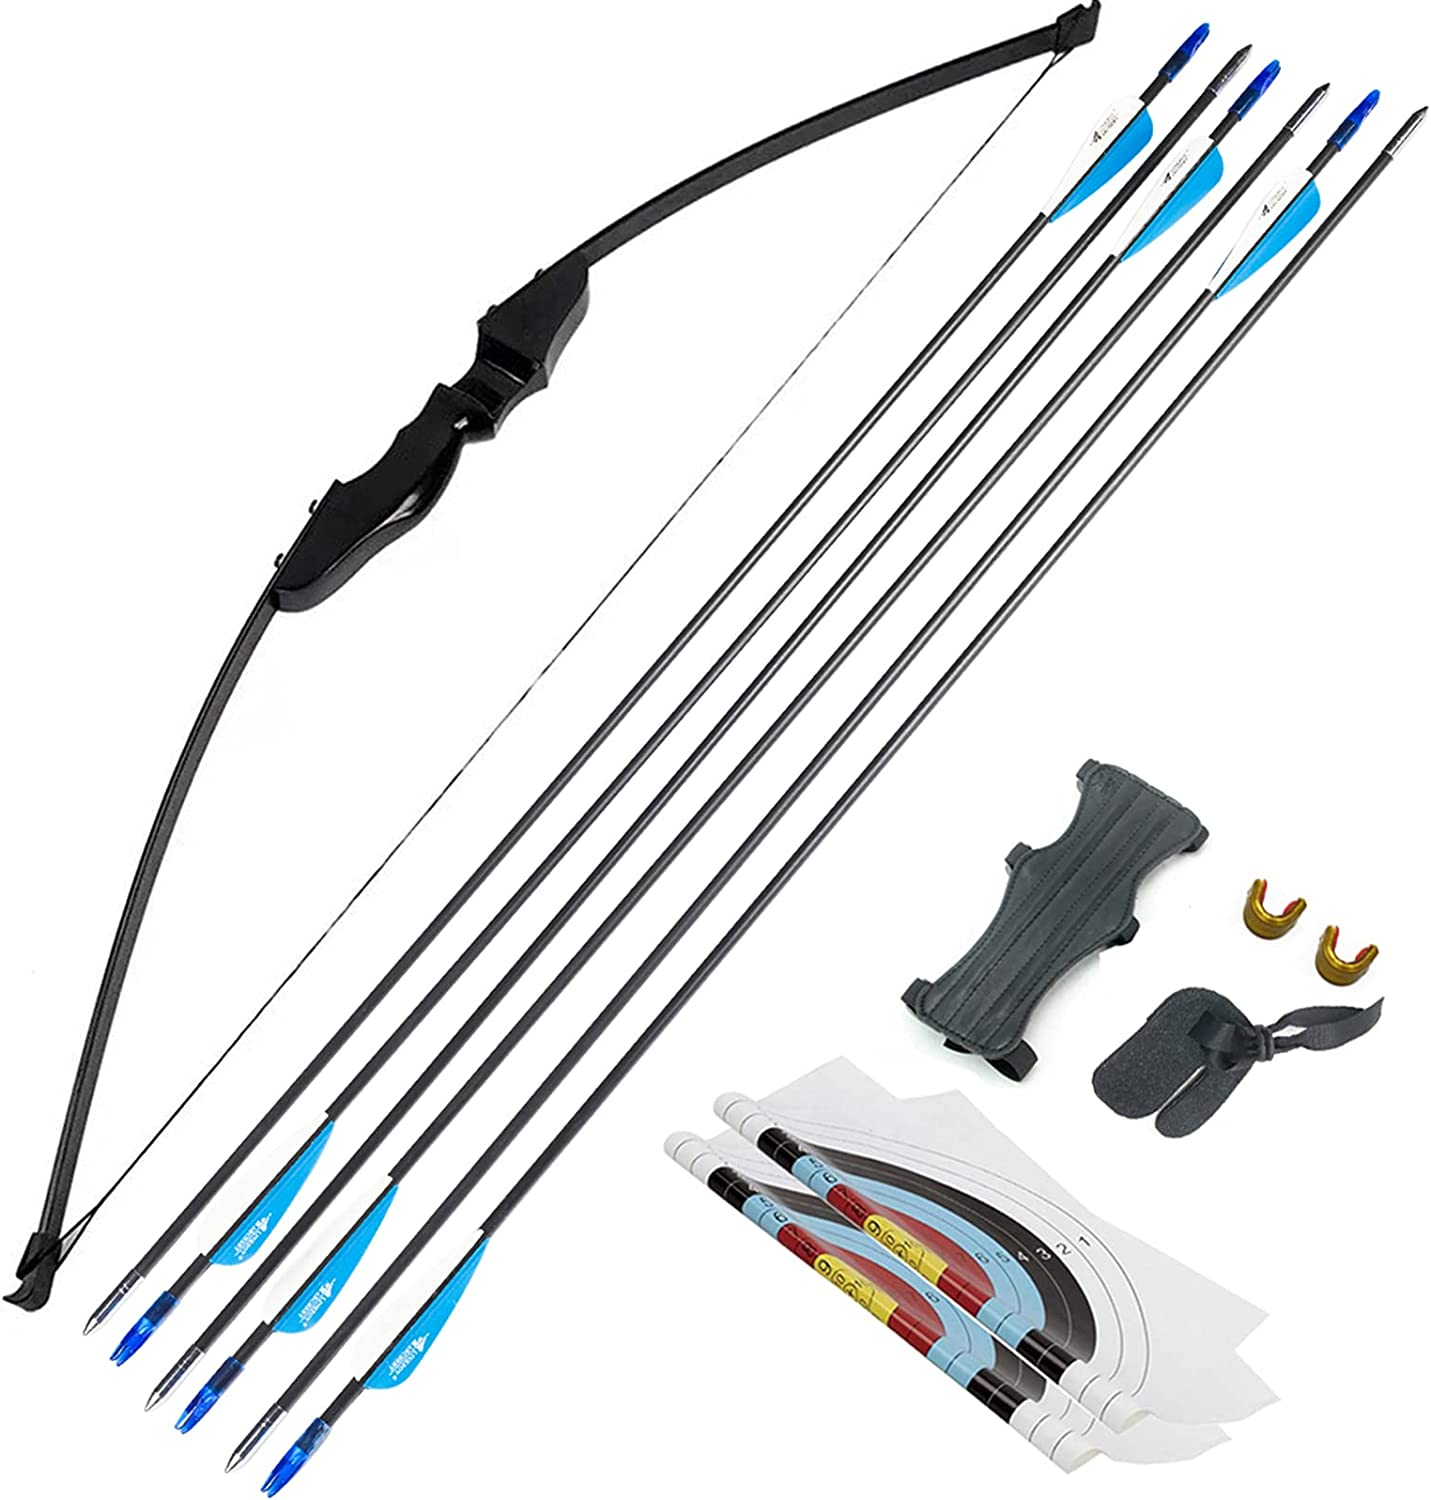 Linkboy Archery Sales of SALE items from new works Teenager Recurve Set for 40lbs Bargain sale Bow